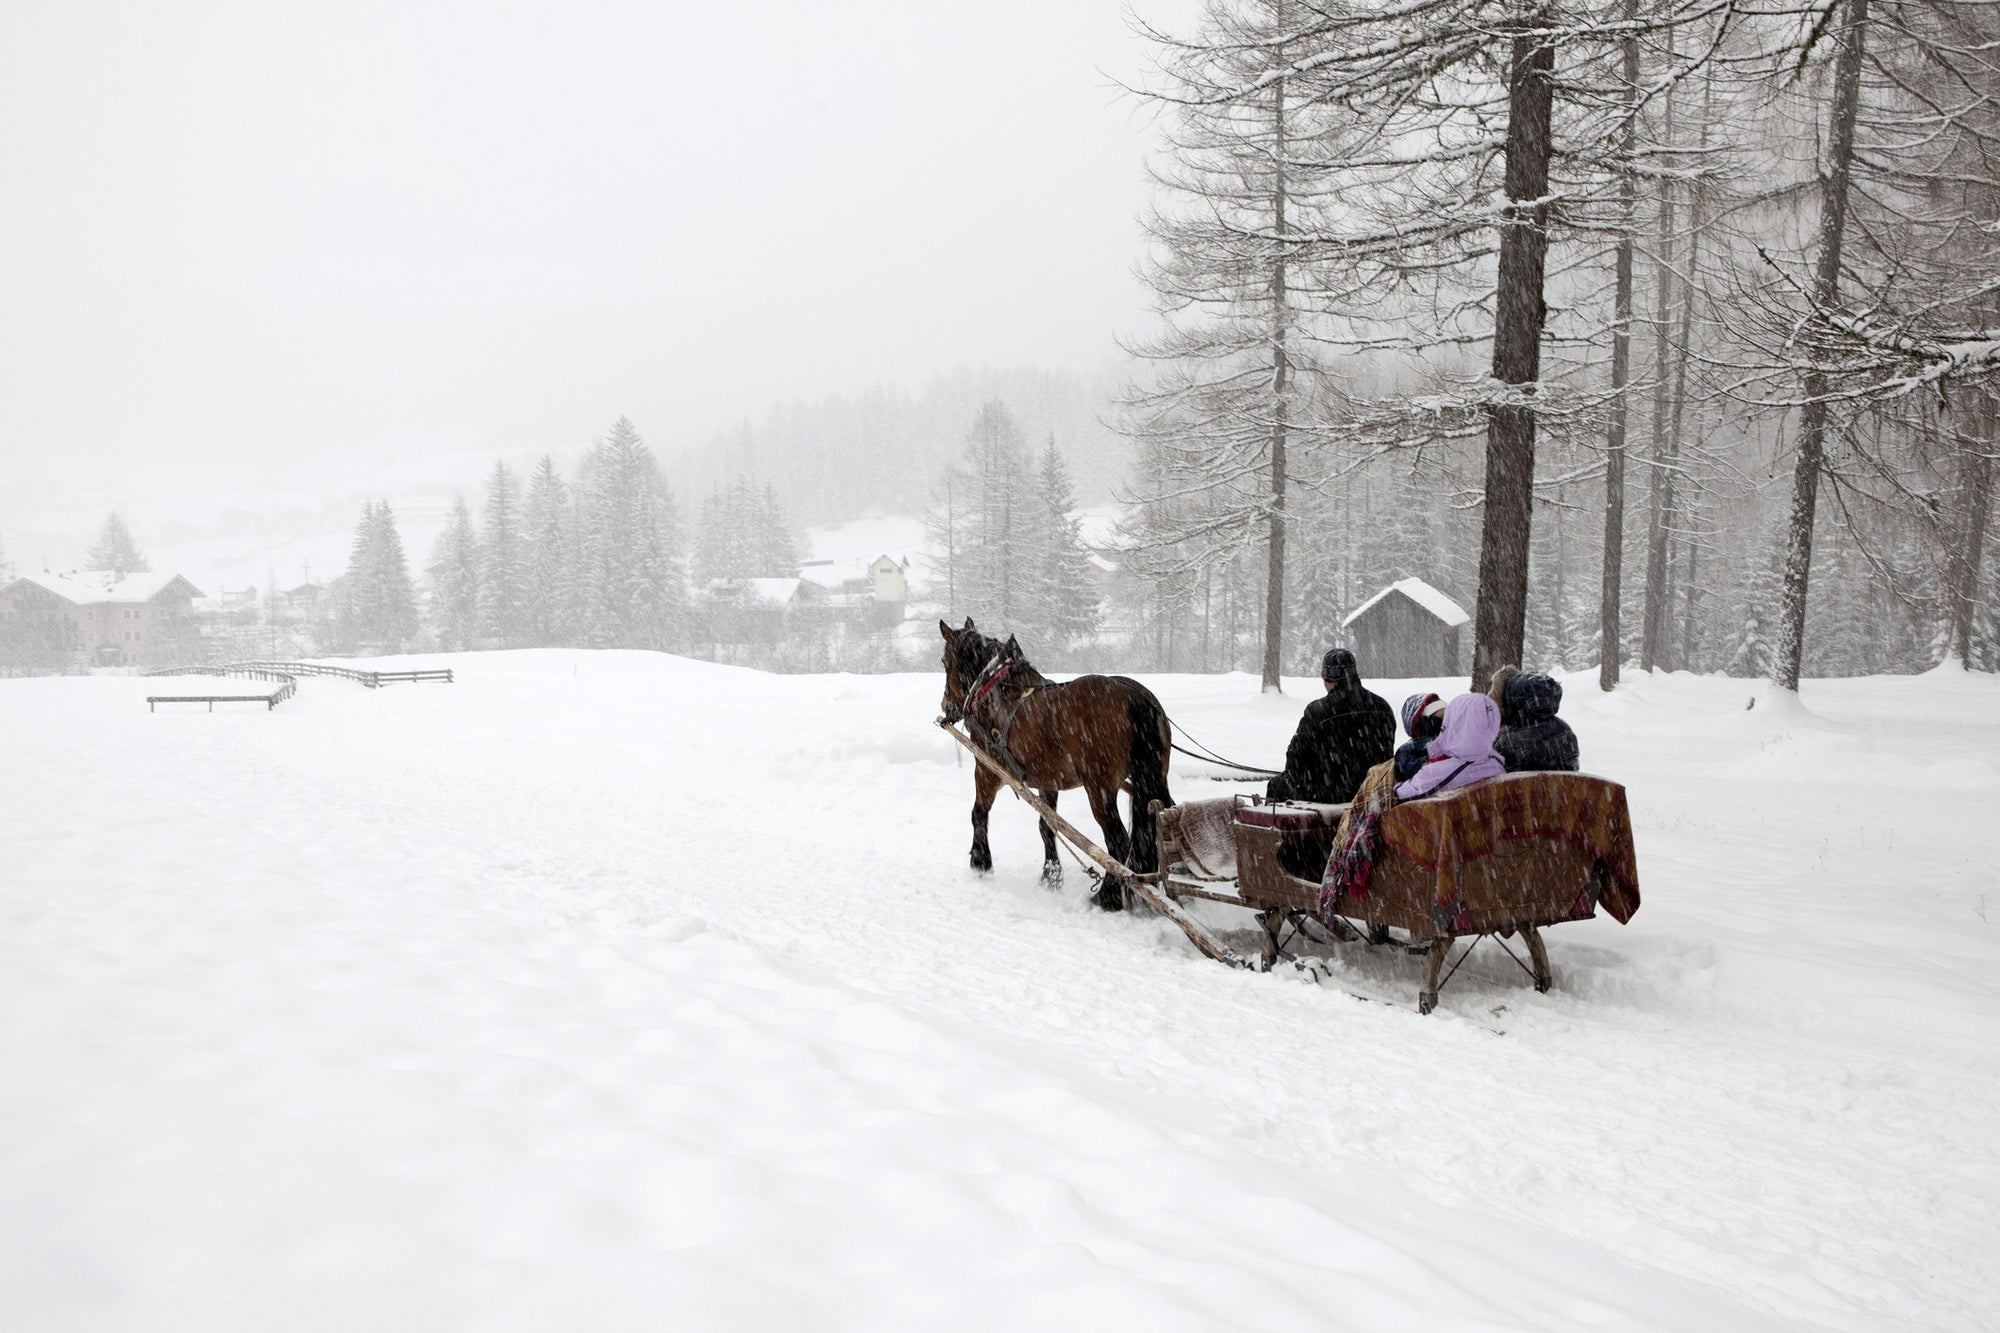 sleigh ride with snow coming down